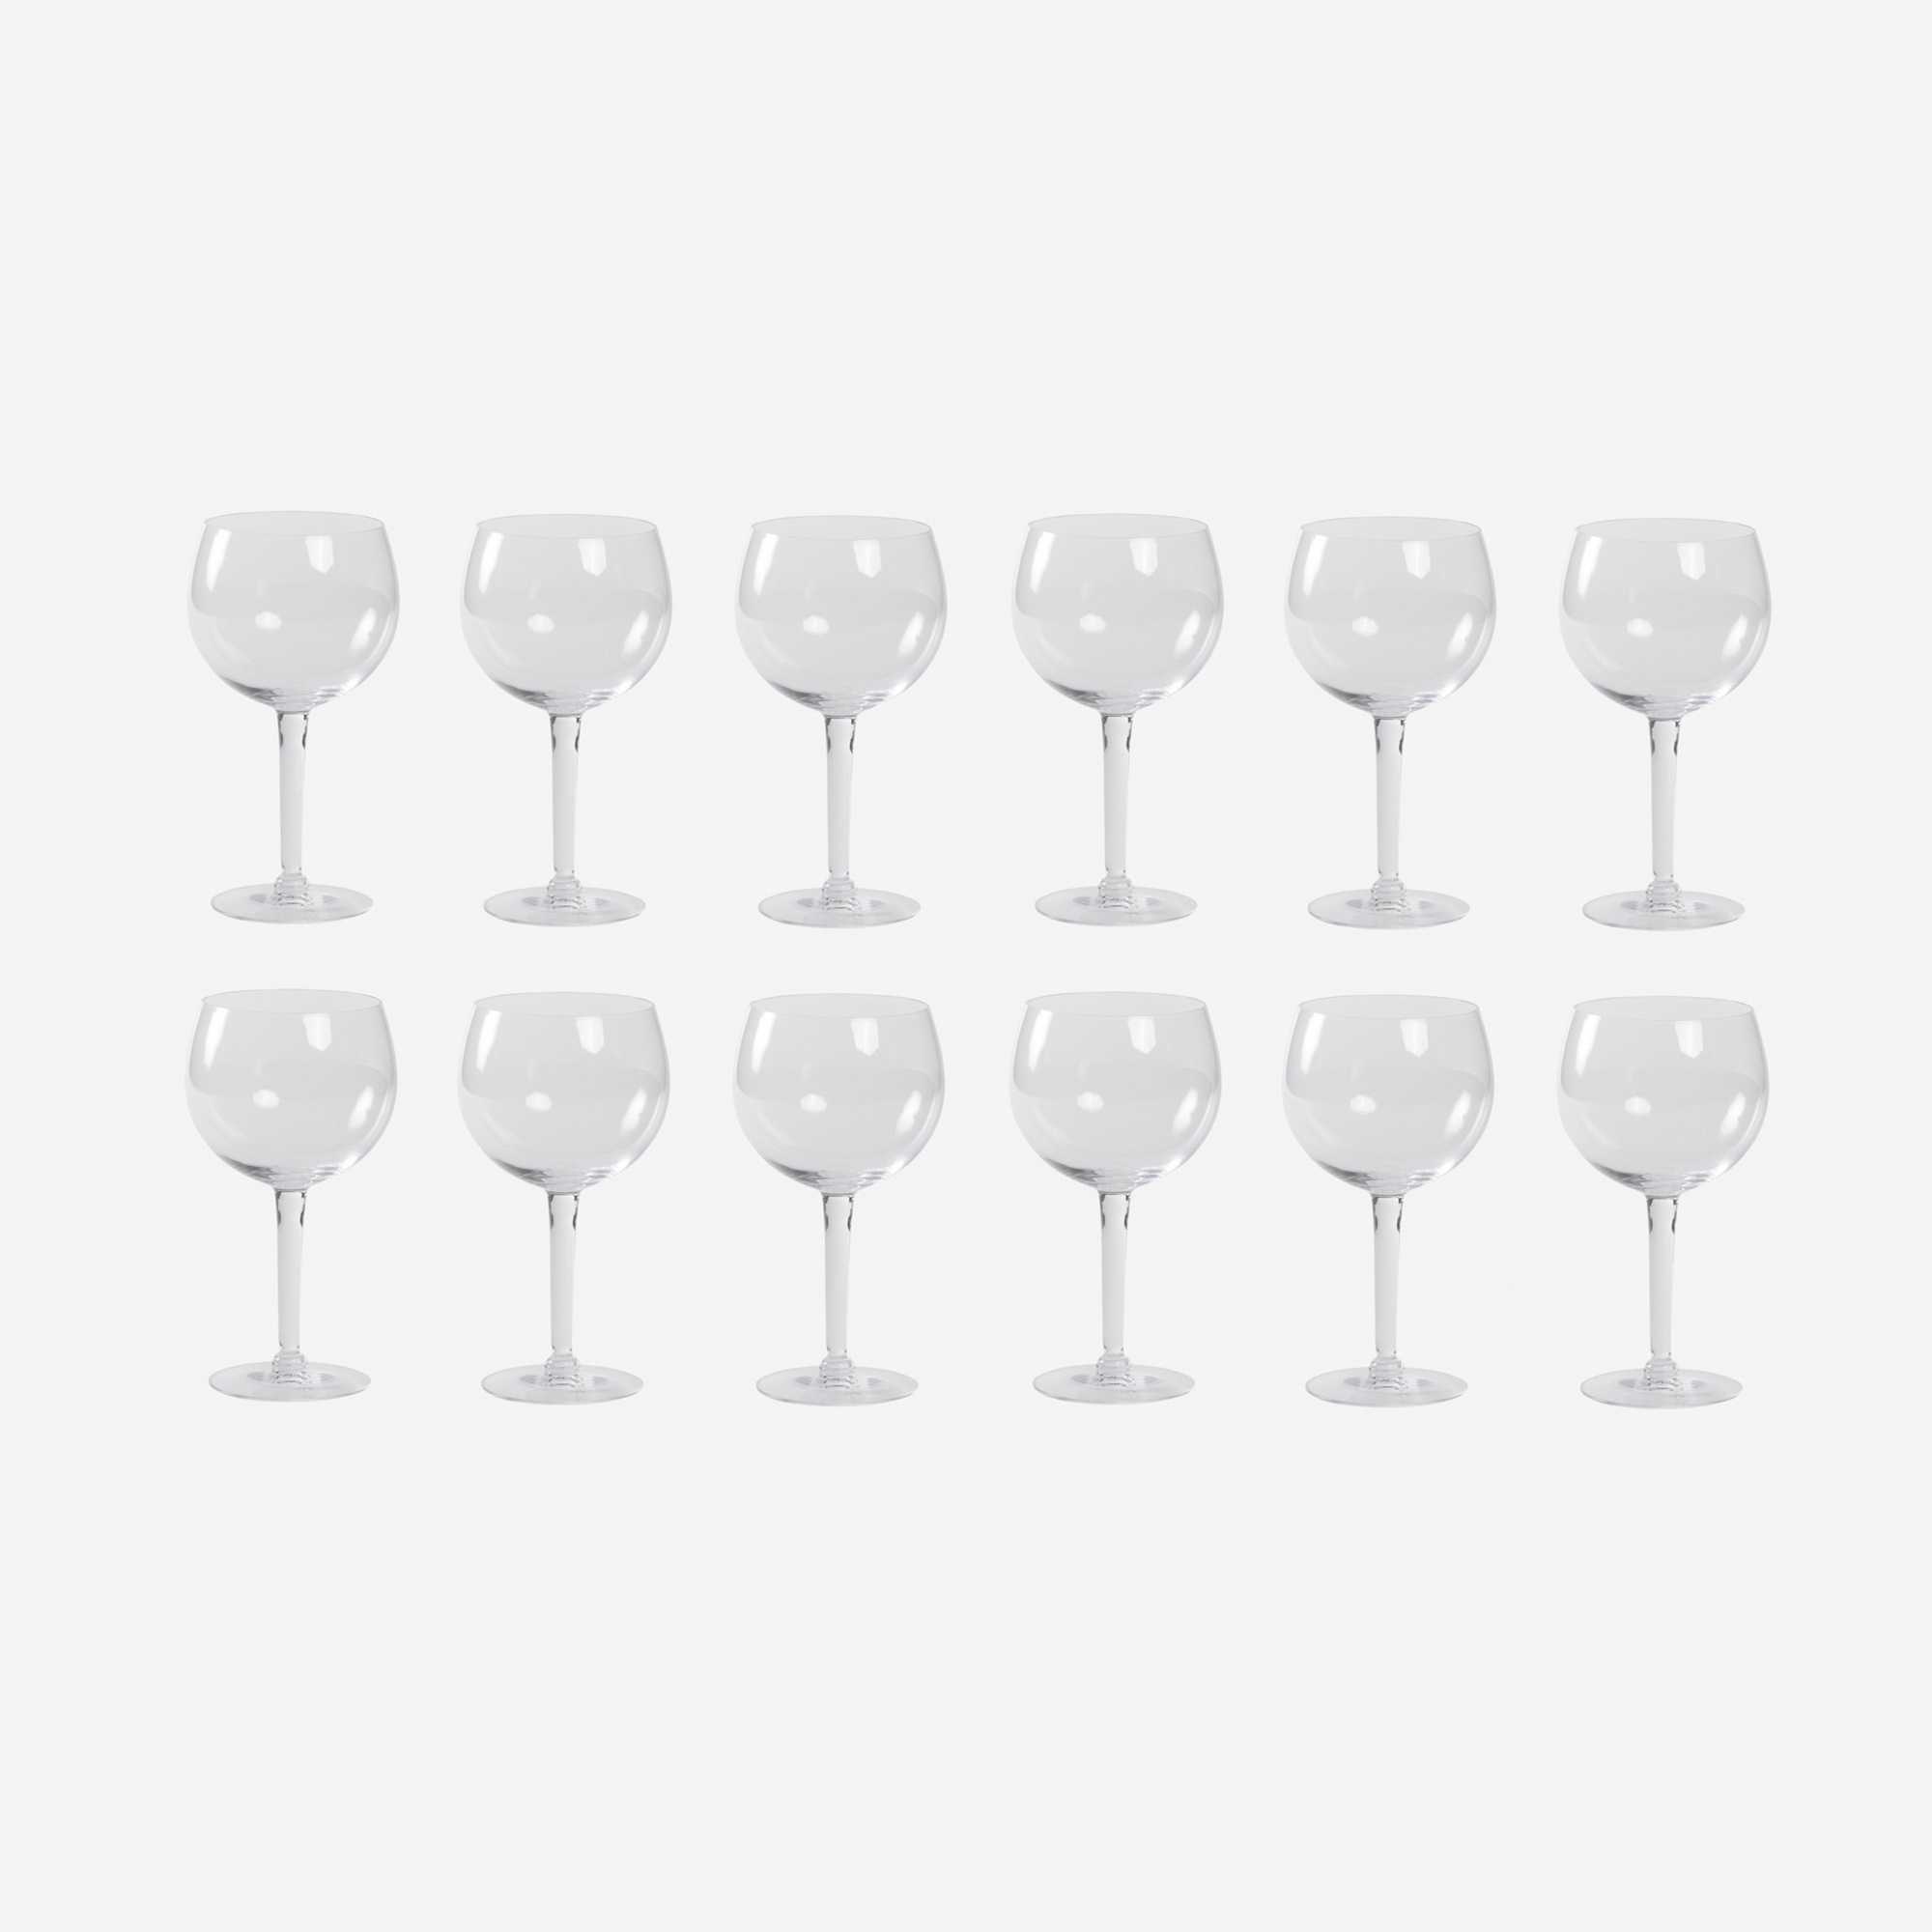 149: Garth and Ada Louise Huxtable / Red Wine glasses from The Four Seasons, set of twelve (1 of 1)